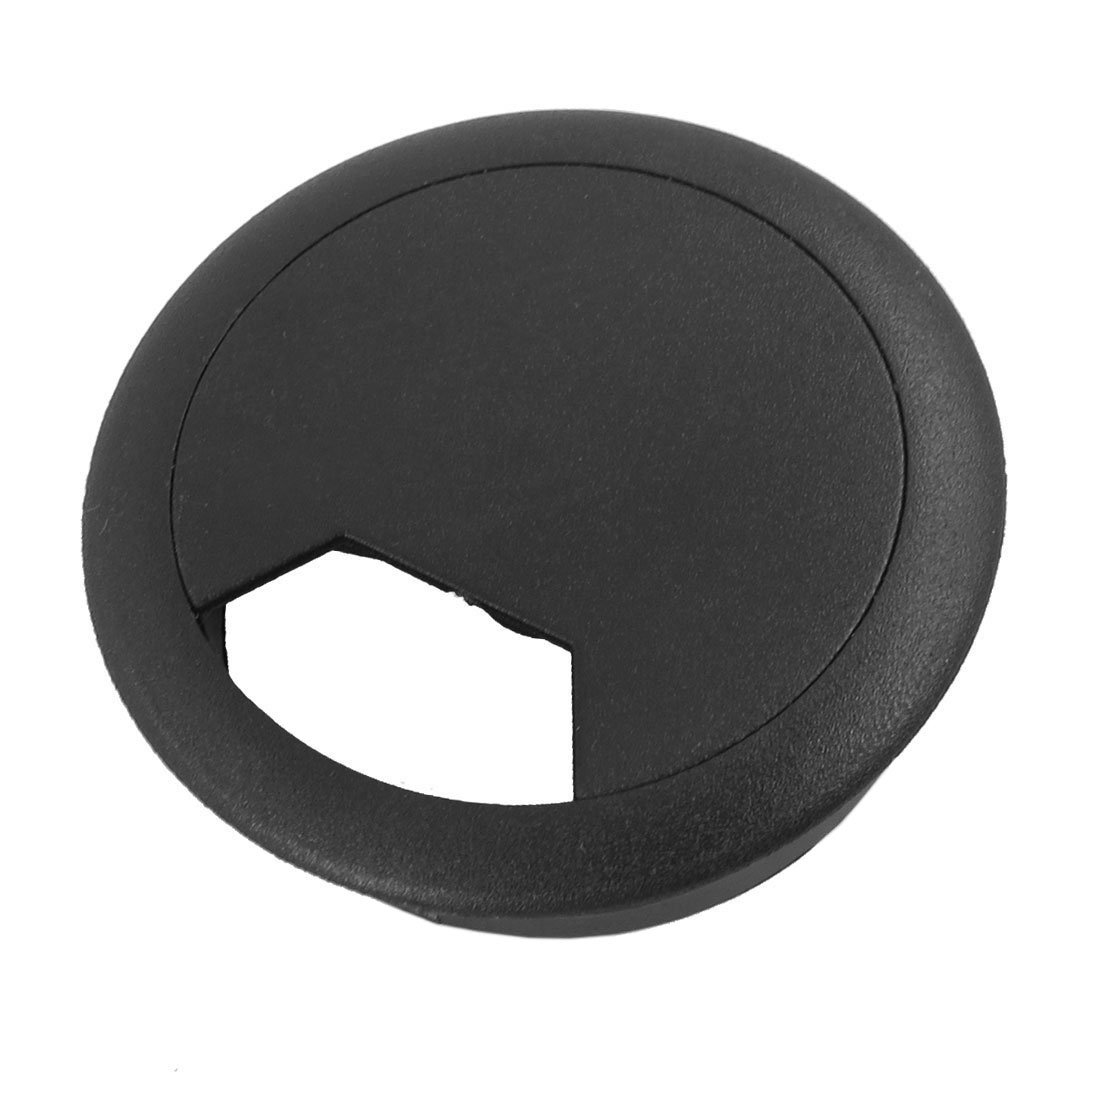 2 Pcs 50mm Diameter Desk Wire Cord Cable Grommets Hole Cover Black2 Pcs 50mm Diameter Desk Wire Cord Cable Grommets Hole Cover Black